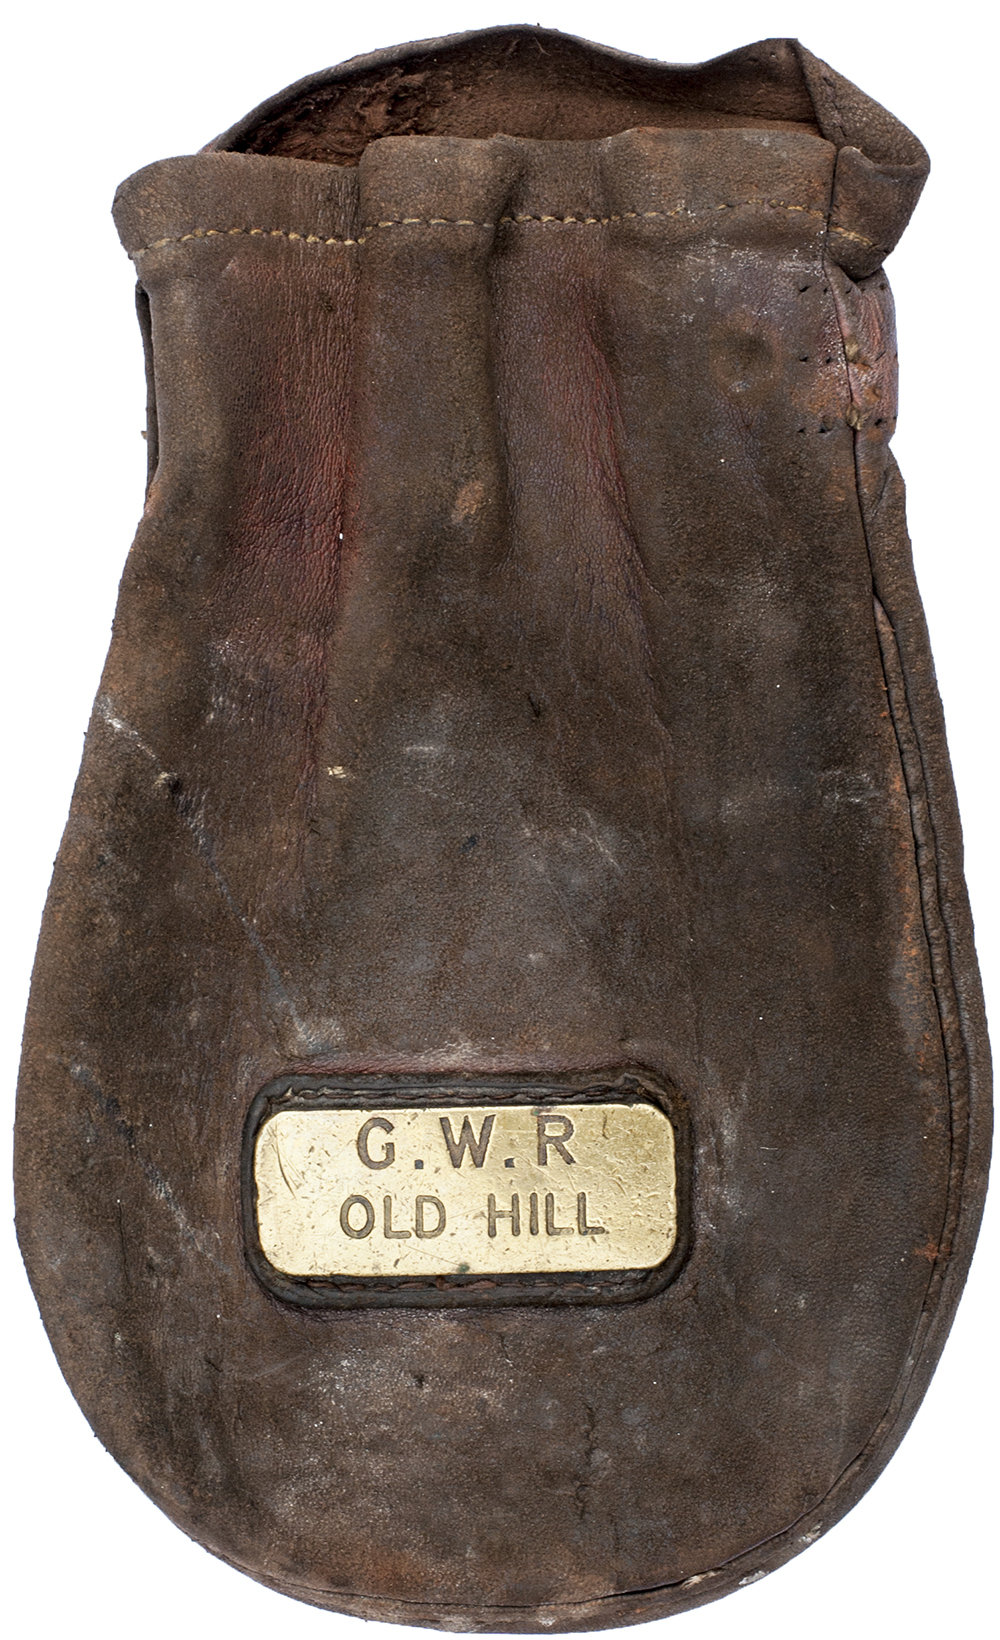 Lot 4 - GWR leather Cash Bag brass plated GWR OLD HILL. In very good condition.